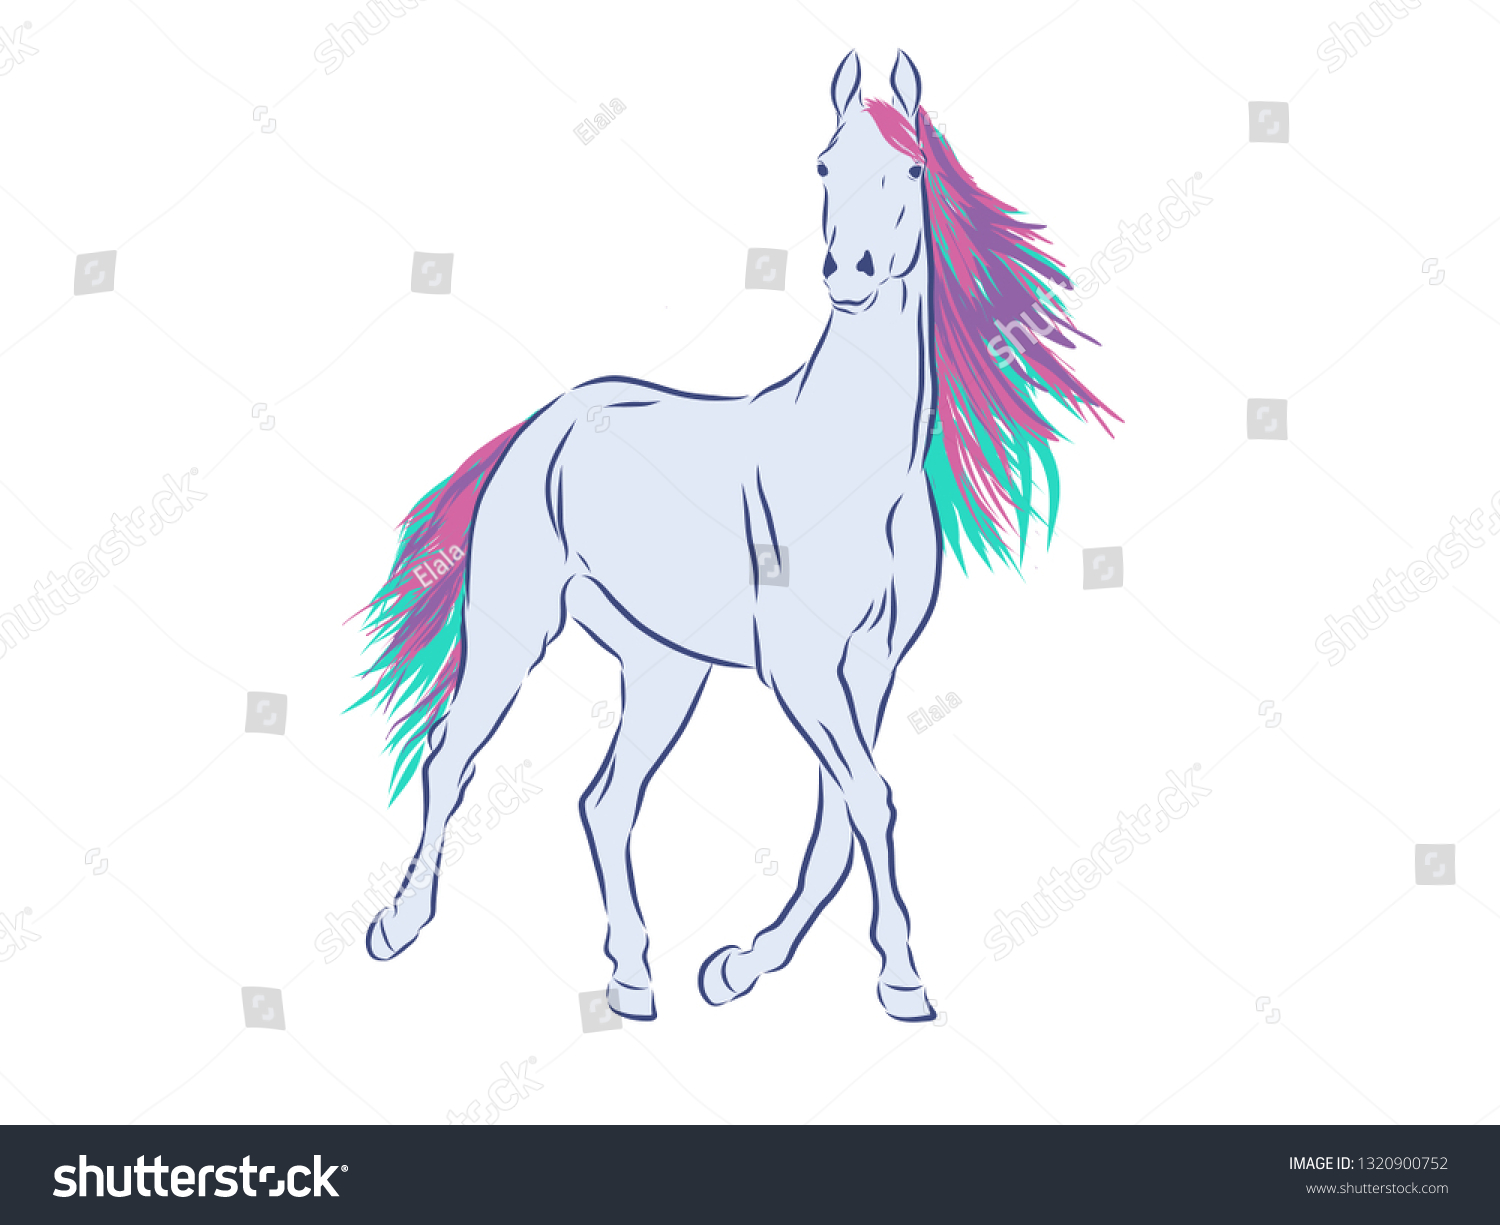 Magic Horse Vector Illustration Stock Vector Royalty Free 1320900752